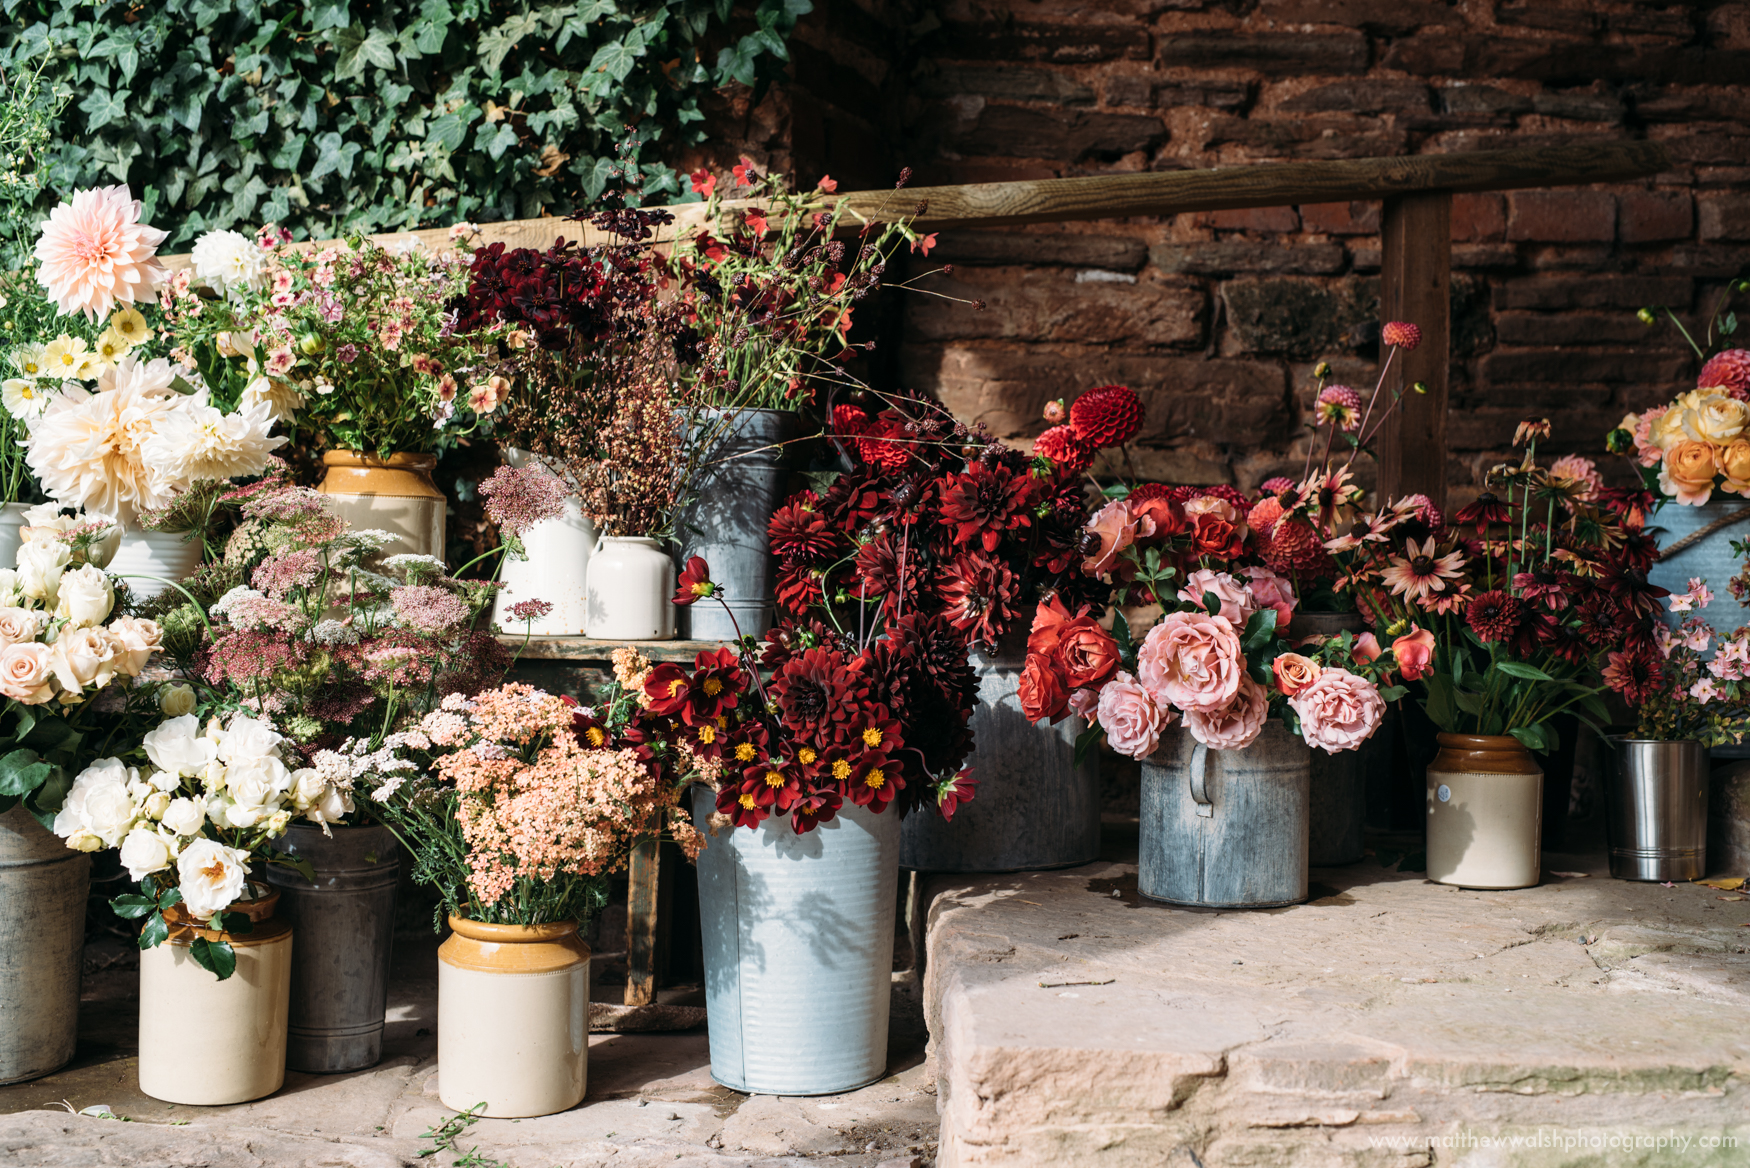 Beautiful freshly picked flowers all ready to be turned into wonderful creations